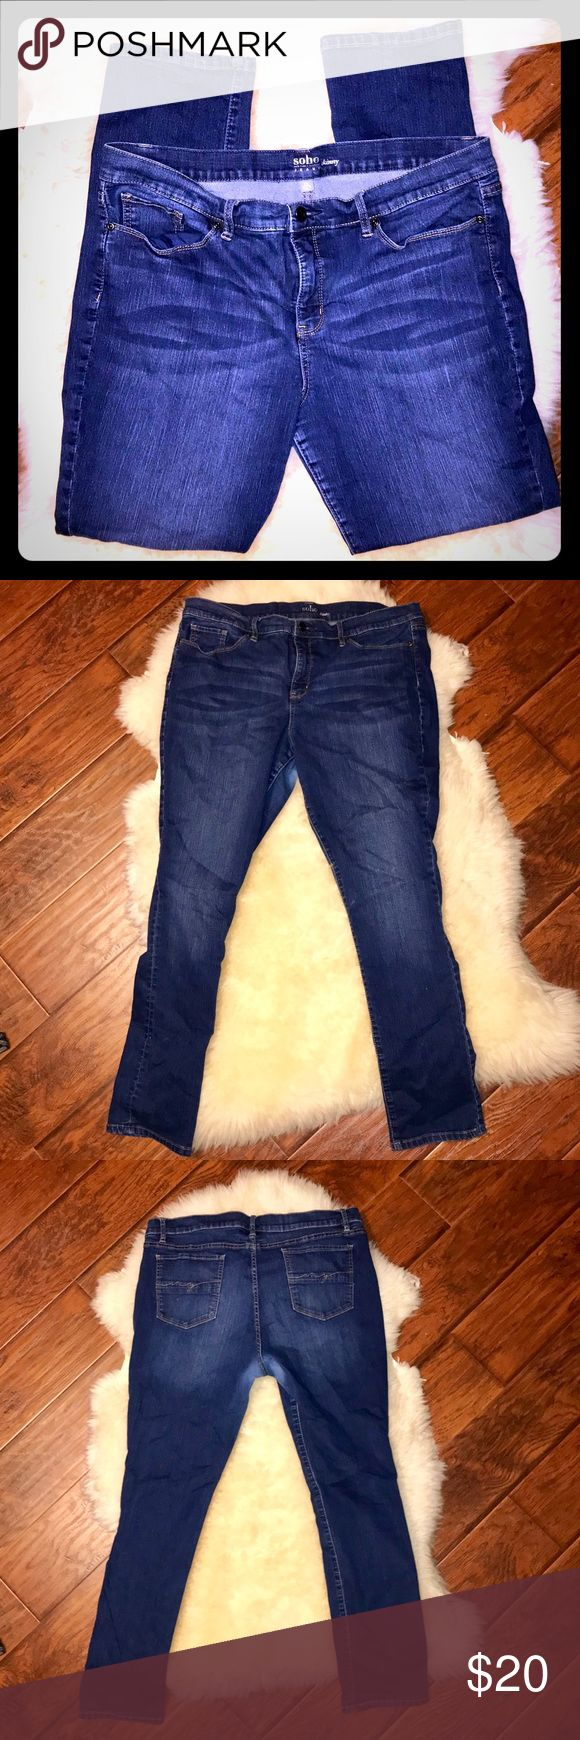 New York & Co SoHo Skinny Jeans New York & Co SoHo Skinny Jeans Size 20 Dark Wash blue. Some very light wear right between the thighs (shown in photos) no peeling just slightly lighter color. You can't see it when you have them on. New York & Company Jeans Skinny